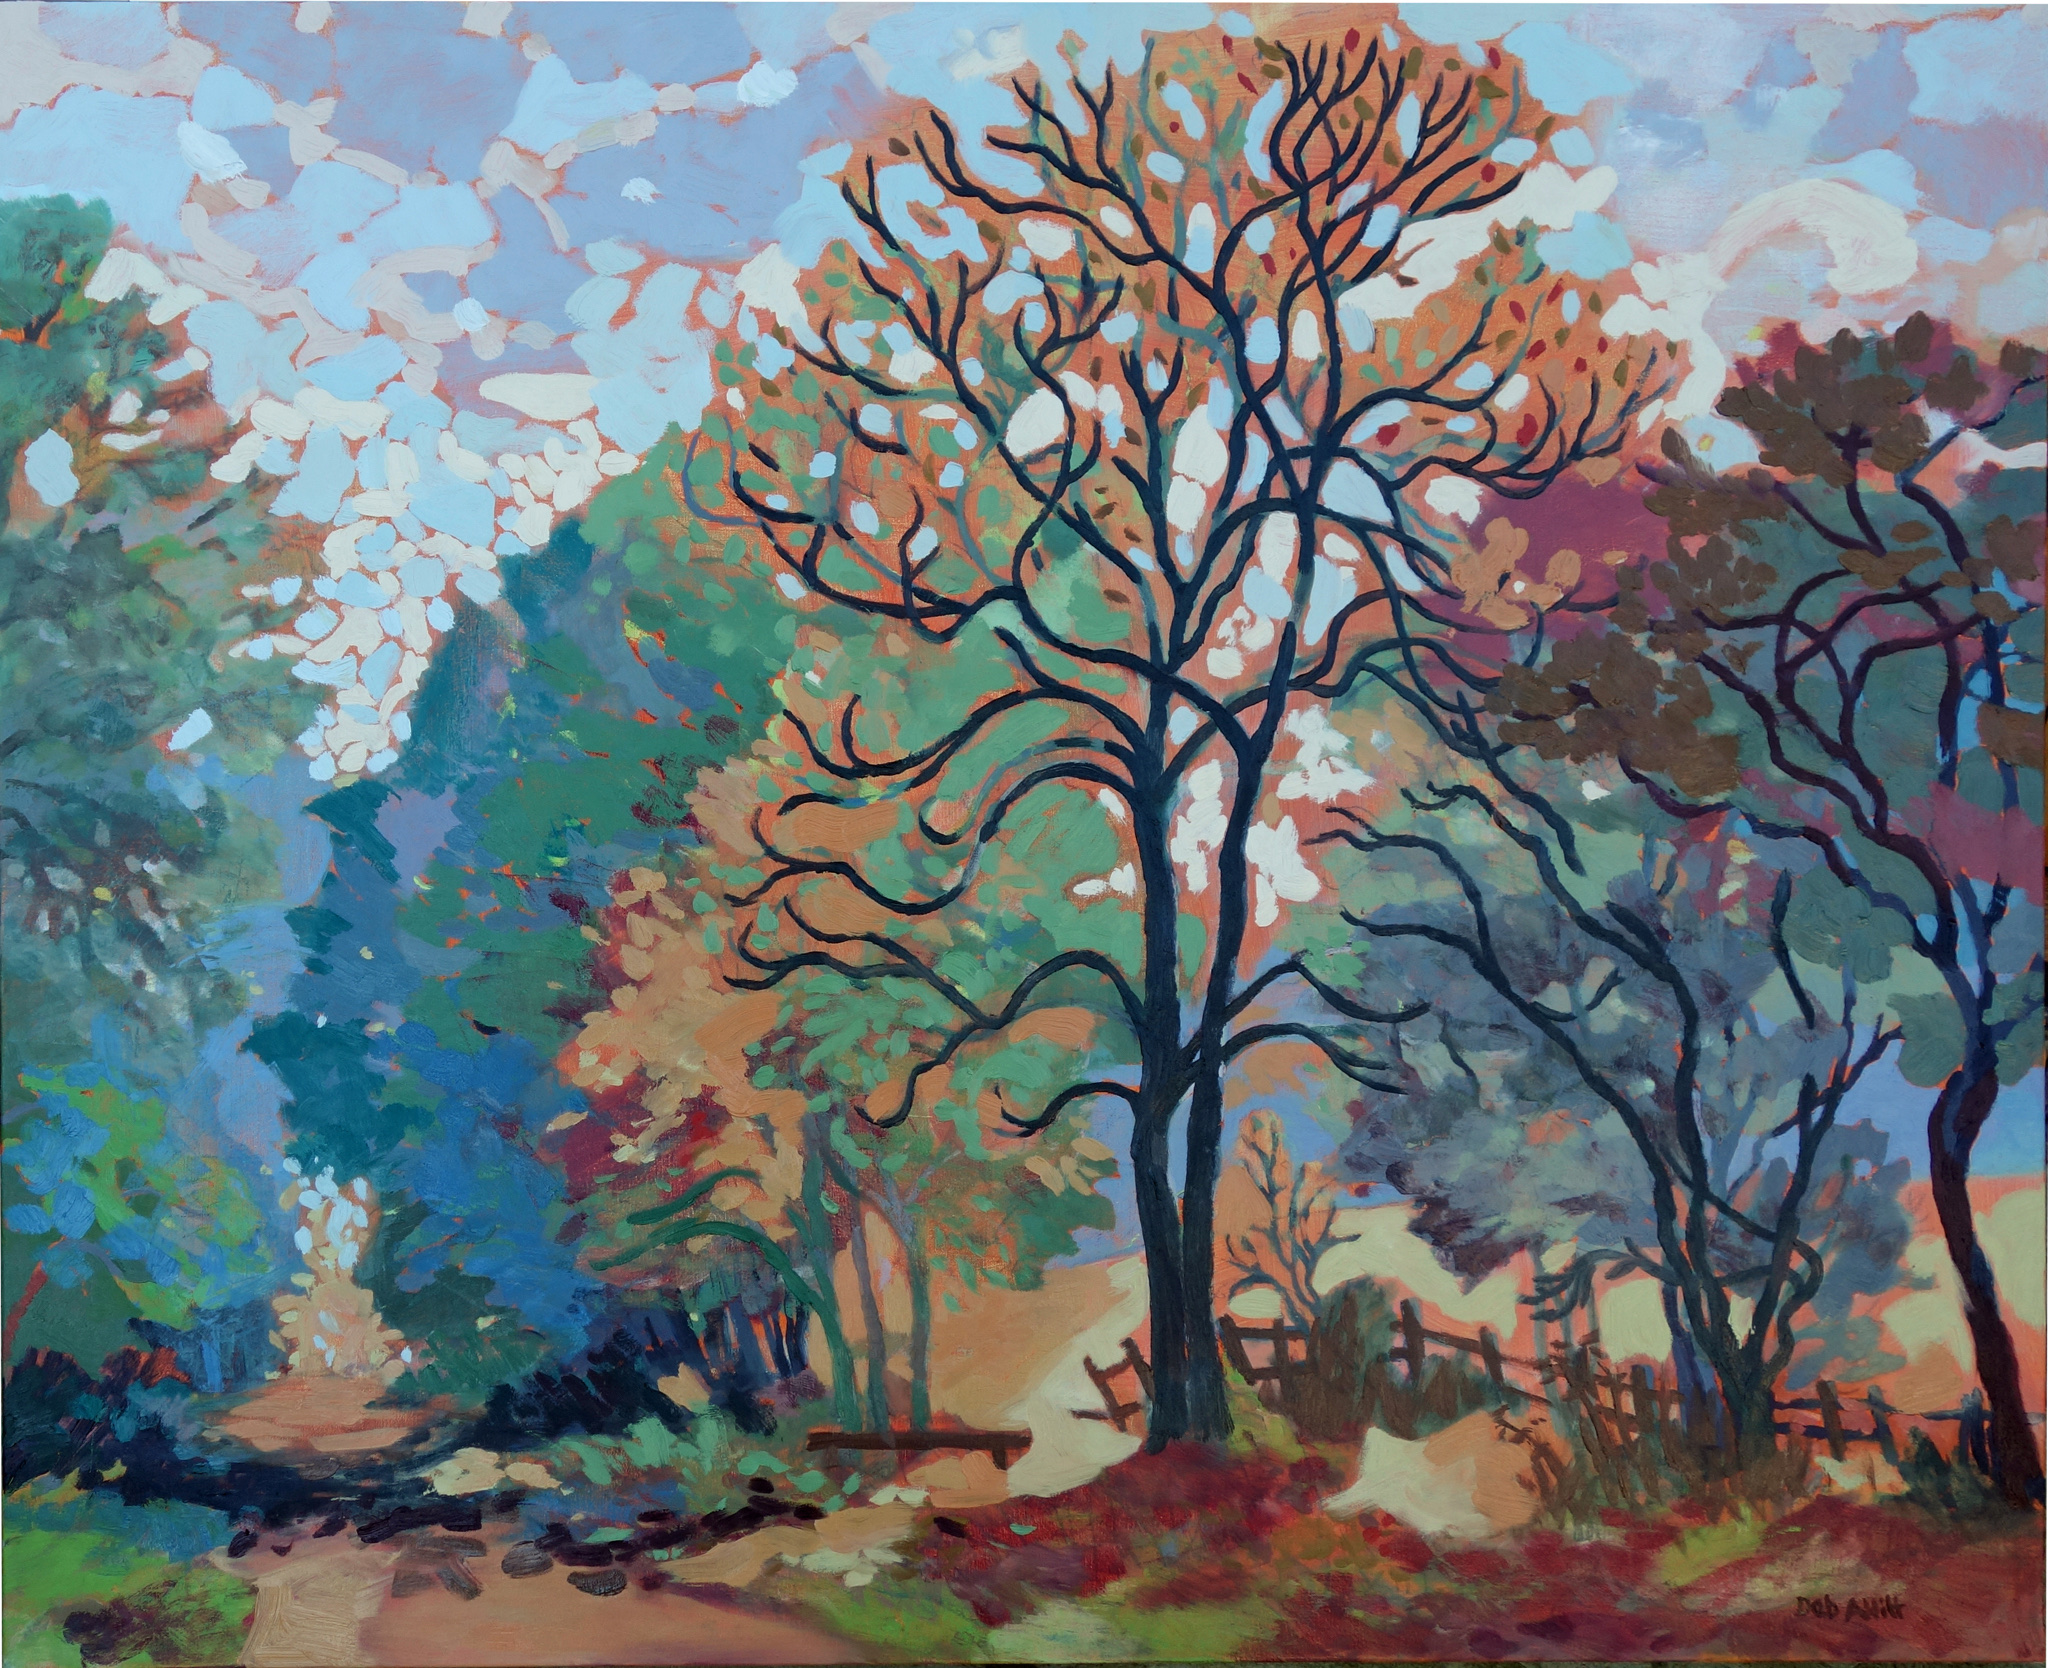 Autumn Trees Along an Old Lane. Oil on canvas. 80 x 100 cm (sold)